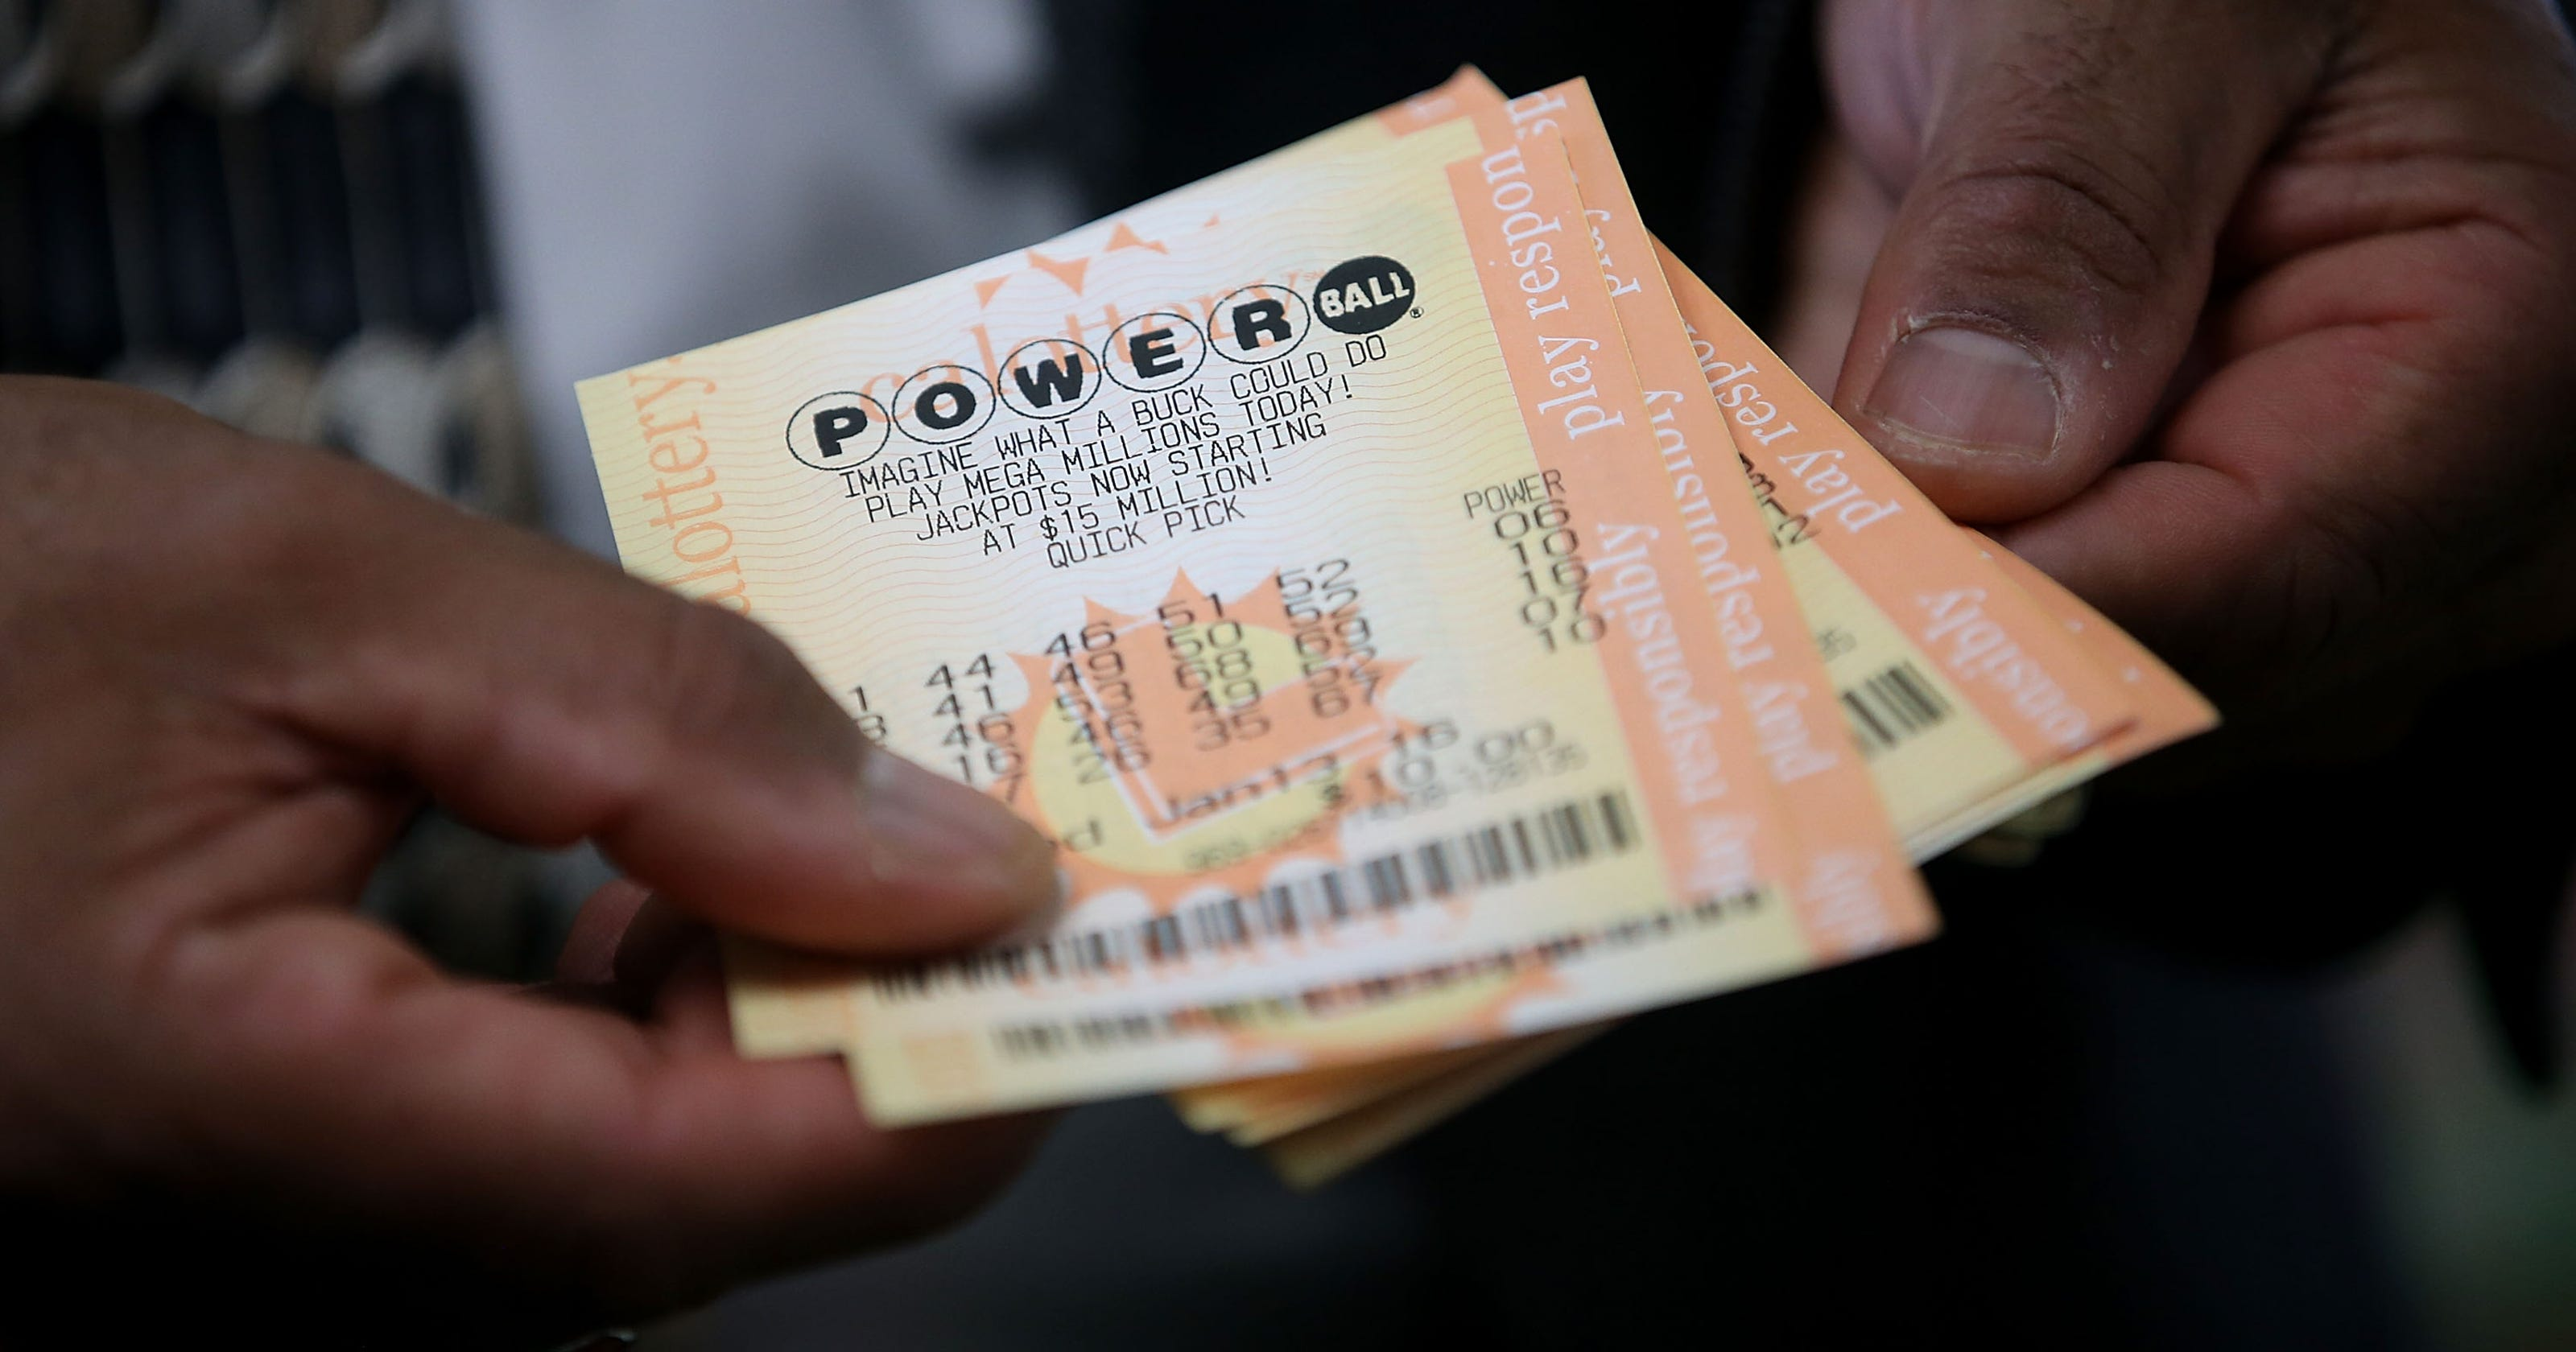 Powerball's Wednesday drawing will be for $750M: Here's what you need to know